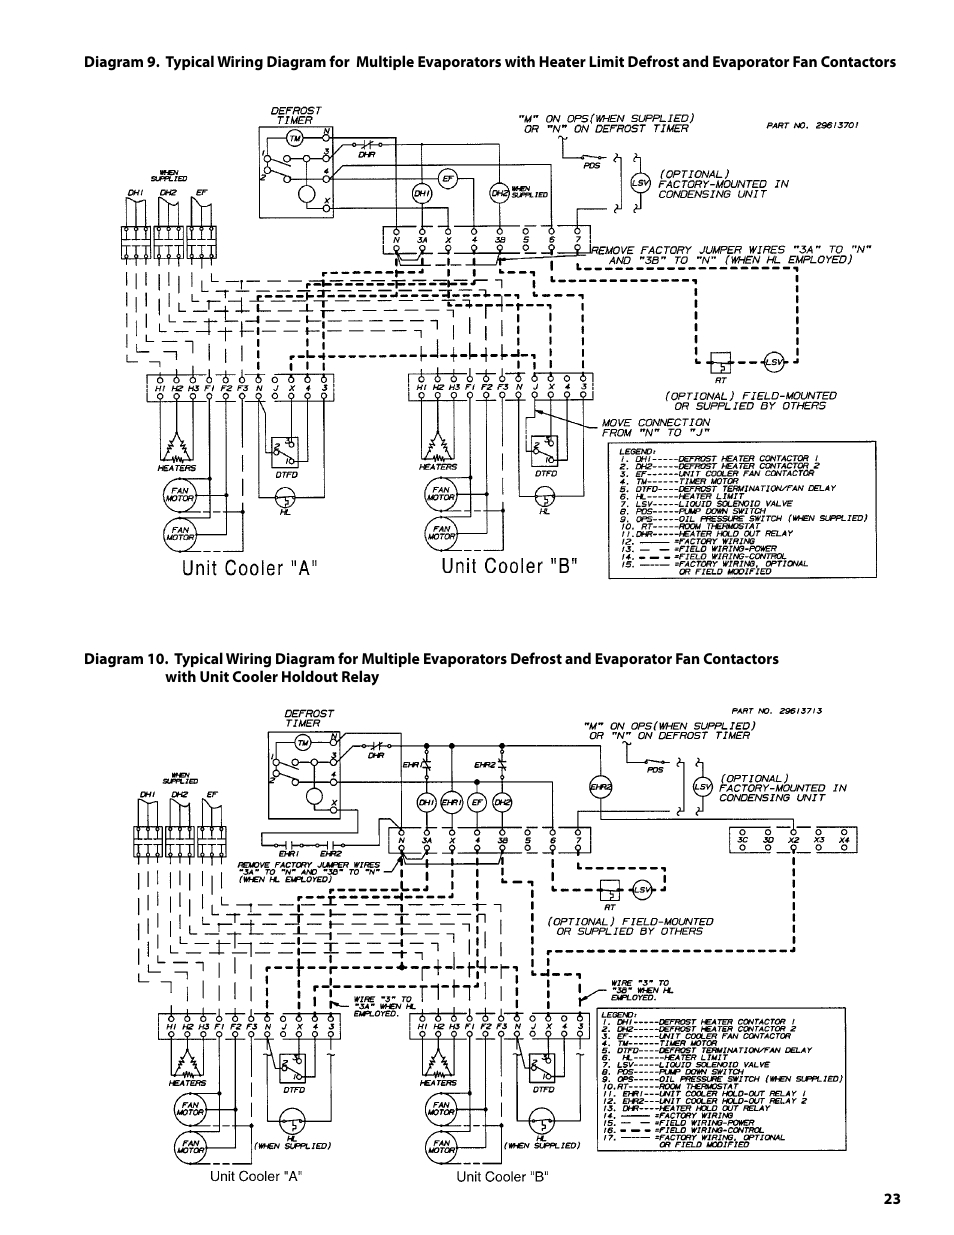 bohn walk in freezer wiring diagram Collection-heatcraft walk in freezer wiring diagram wiring diagram rh faceitsalon Copeland pressor Wiring Diagram 11-k